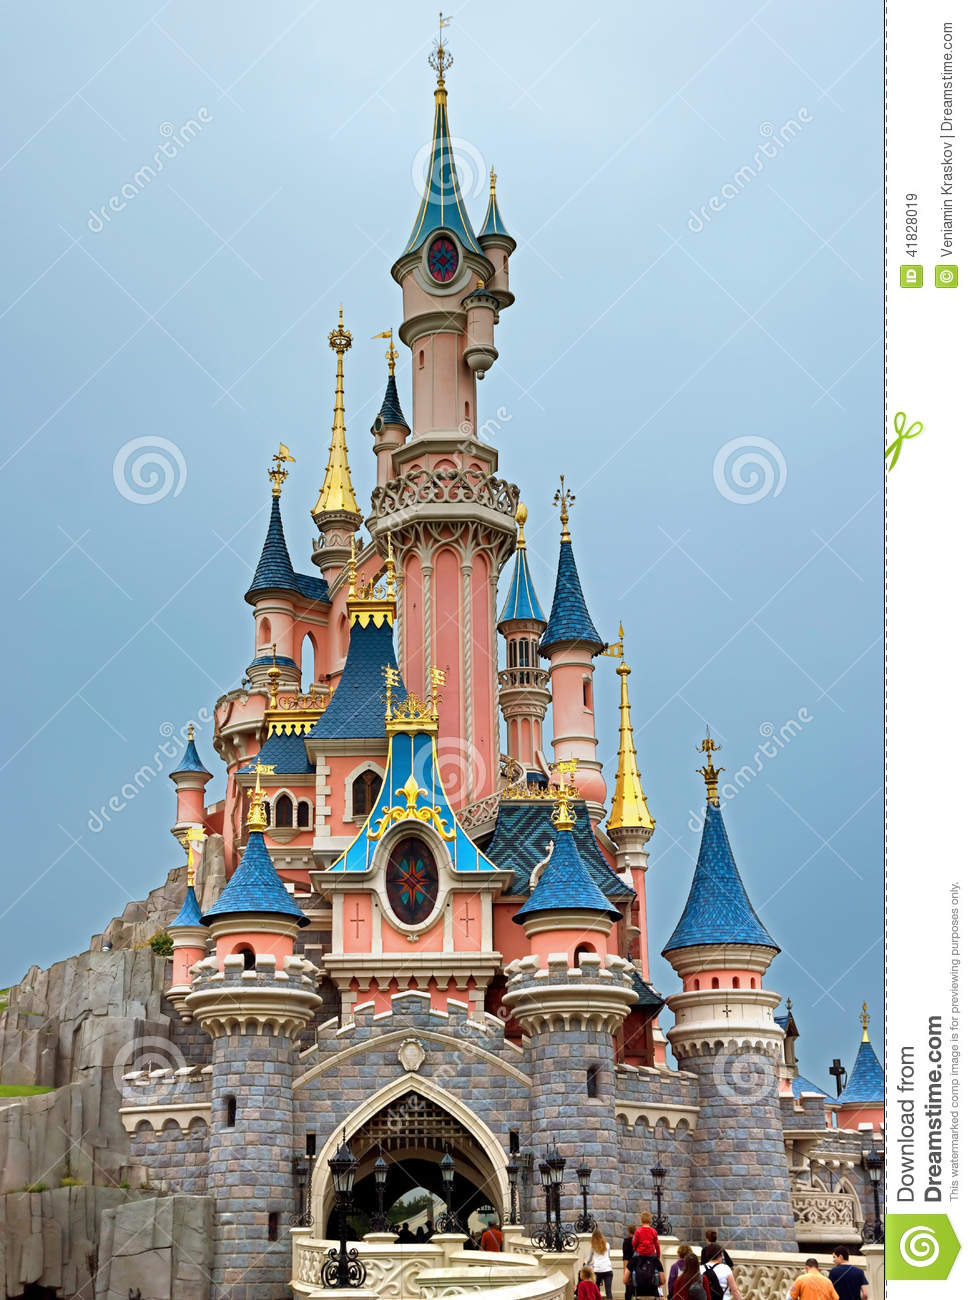 Disneyland Sleeping Beauty Castle Editorial Stock Image